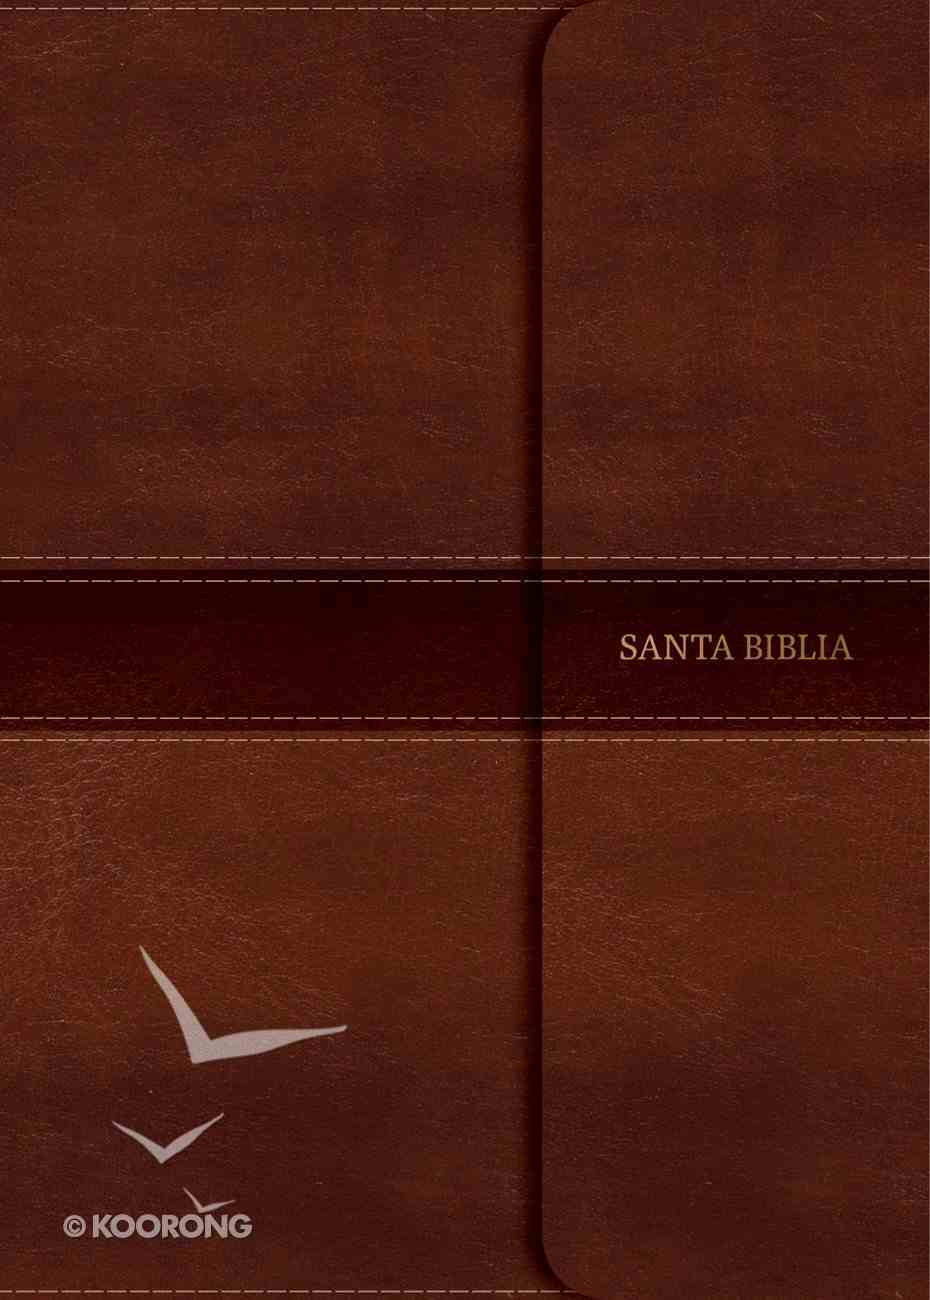 Rvr 1960 Biblia Compacta Letra Grande Marron Indice Y Solapa Con Iman (Red Letter Edition) (Large Print Indexed Magnetic Flap) Imitation Leather